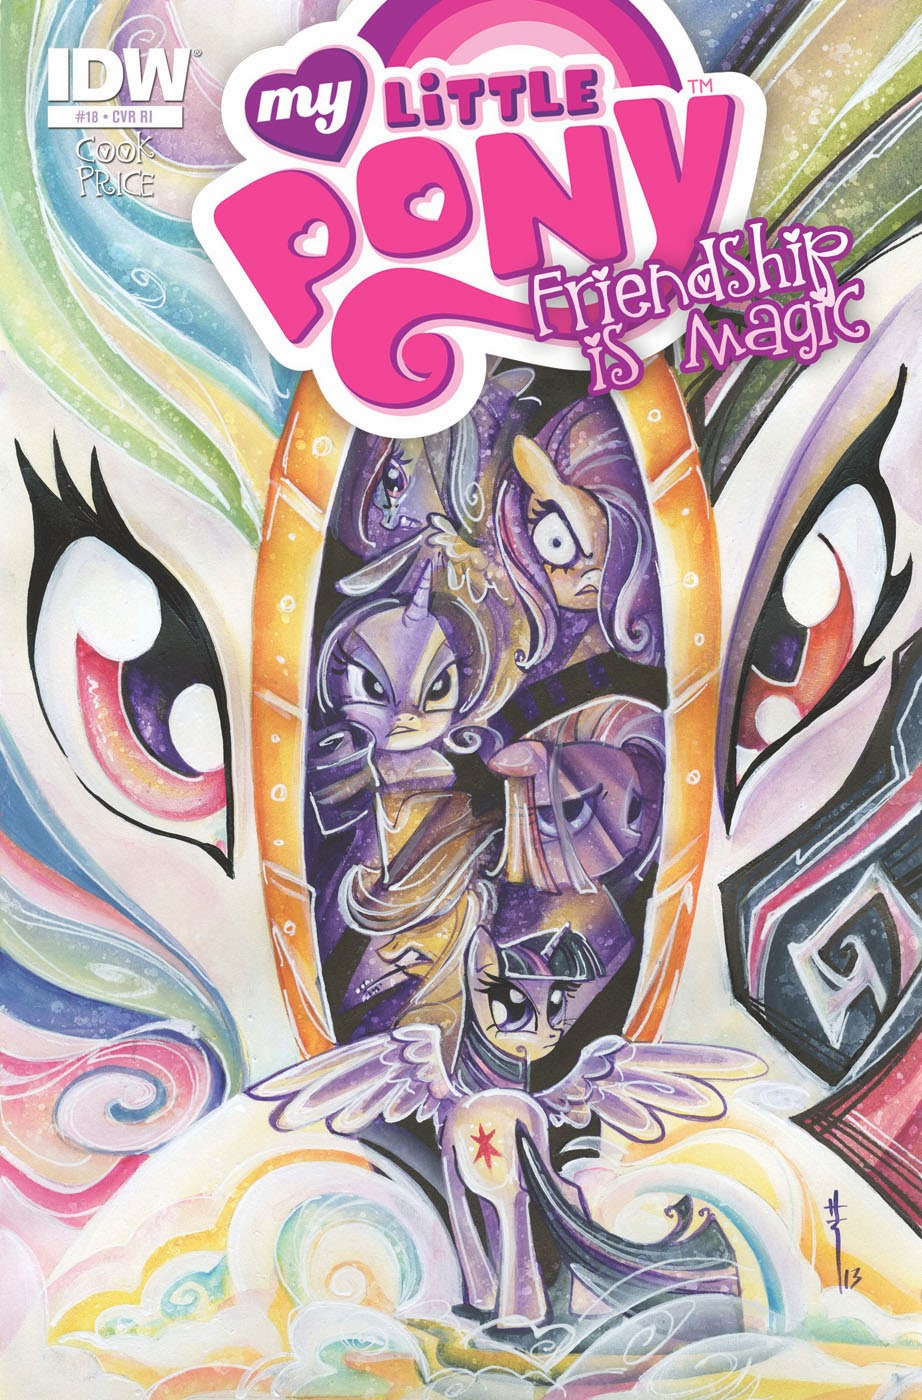 My Little Pony Friendship Is Magic 18 E Friends Forever